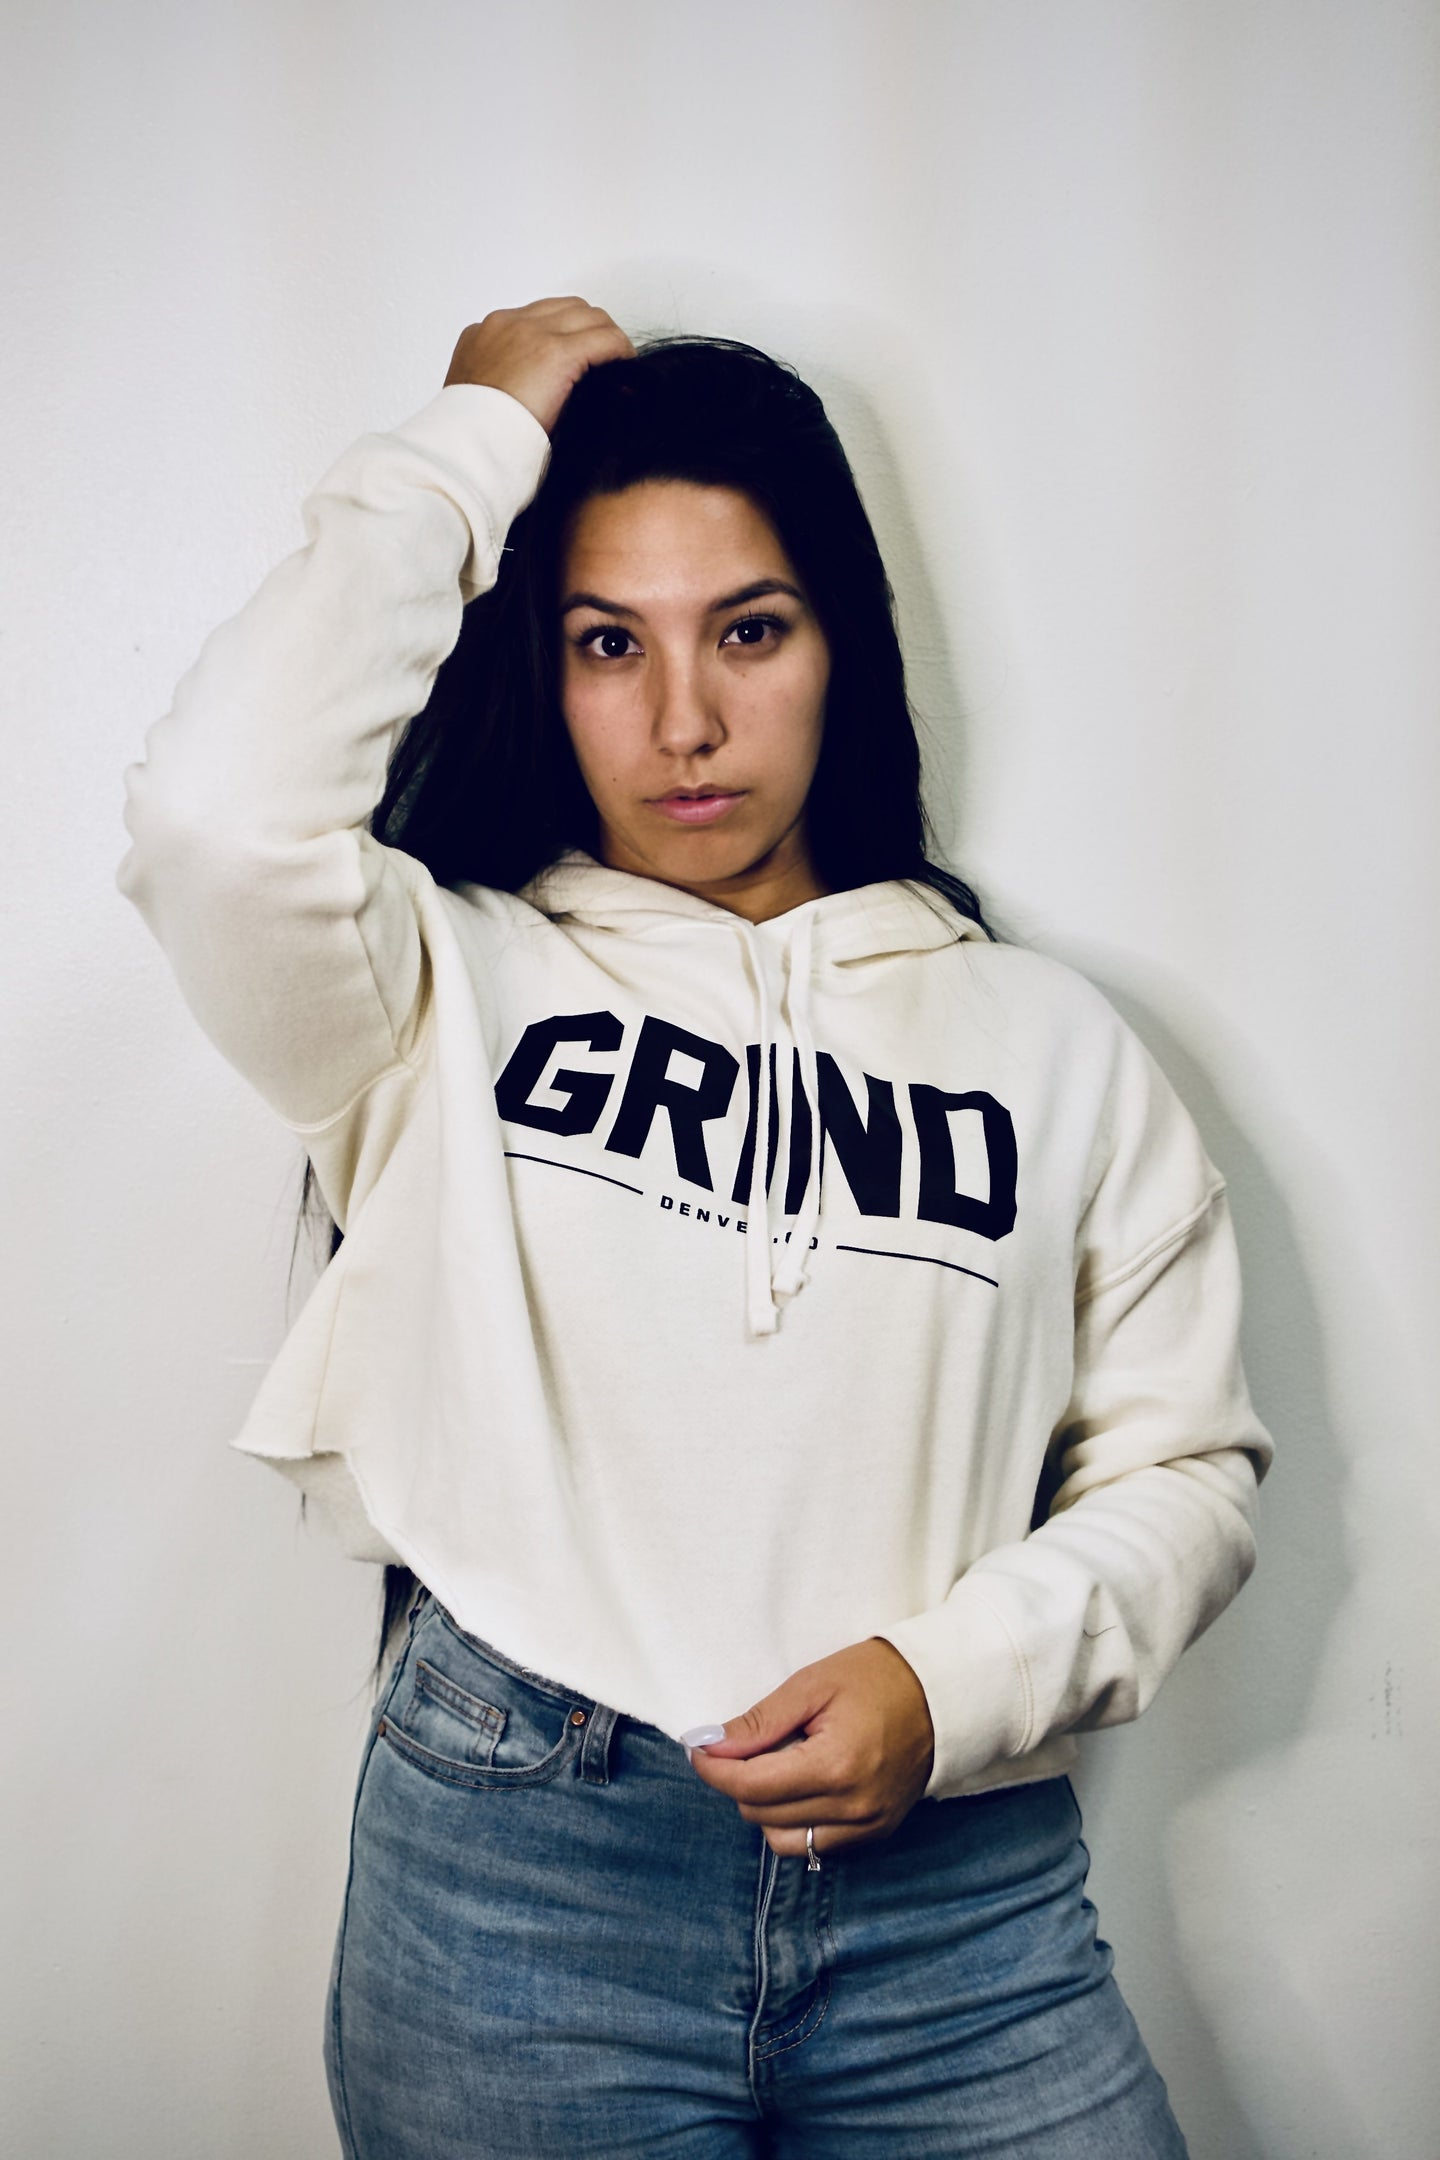 GRIND Crop Top Hoodie - Bone - On The Grind